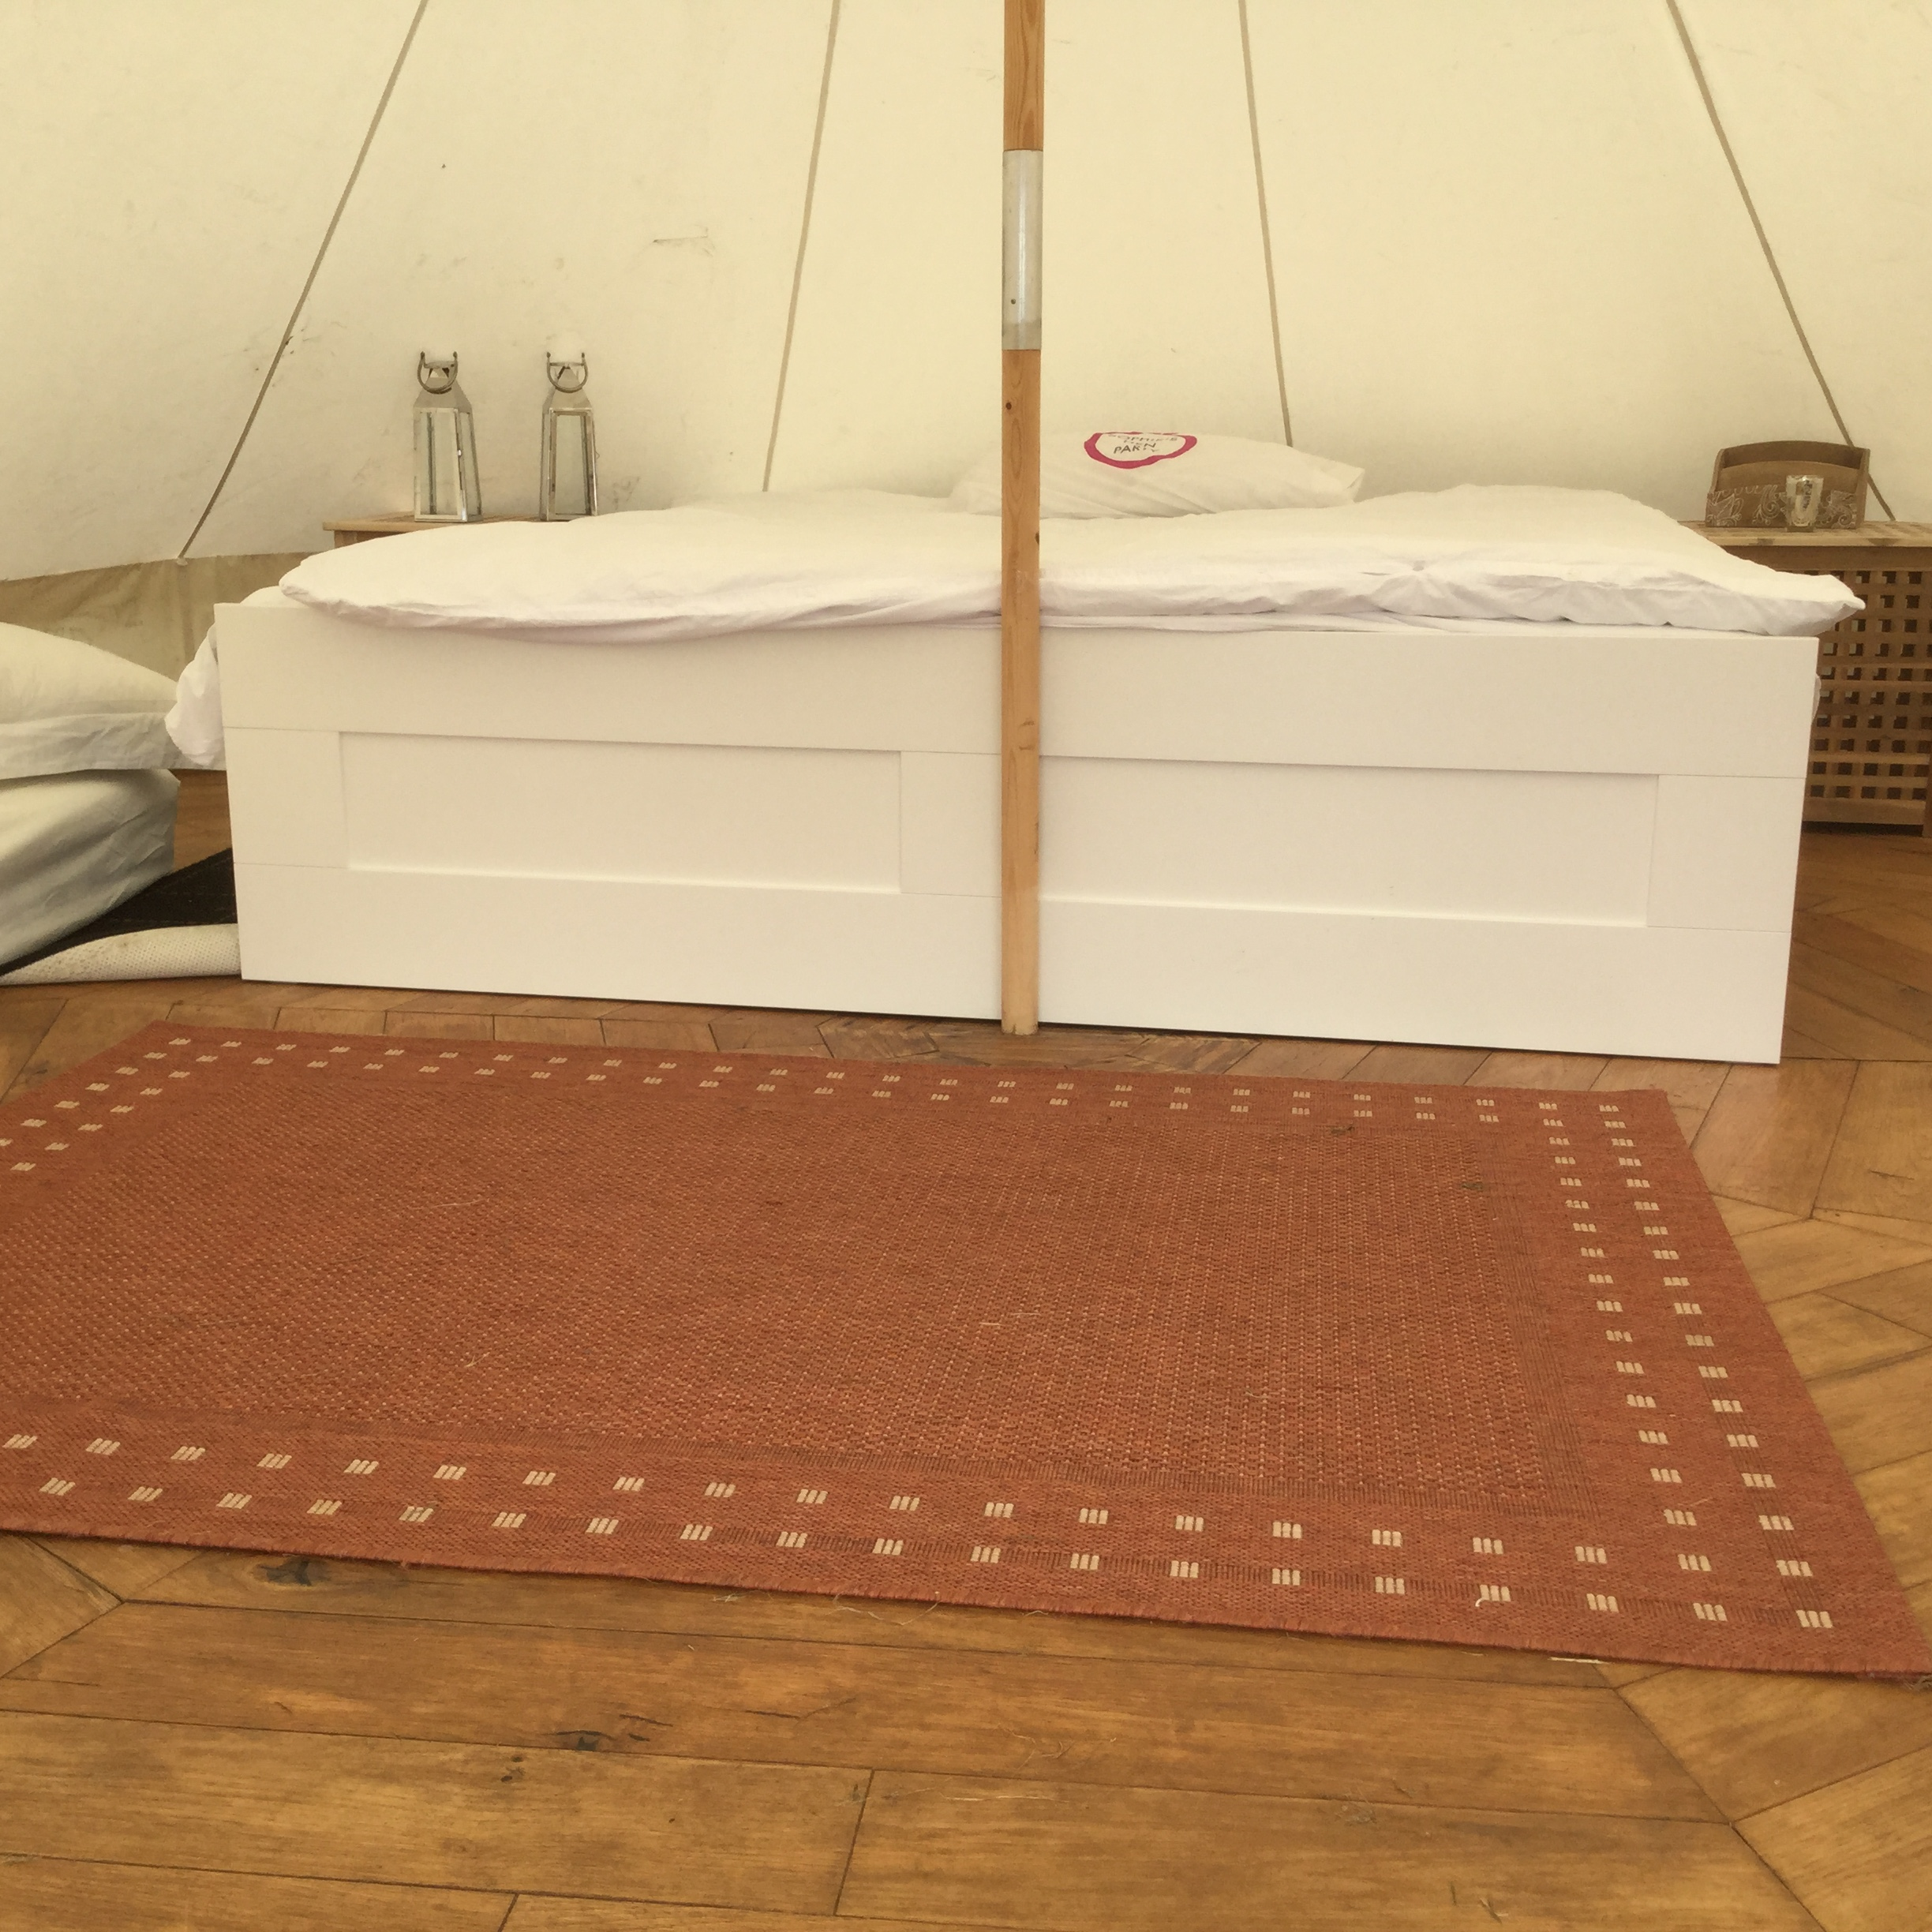 Bell Tent at Manor Farm